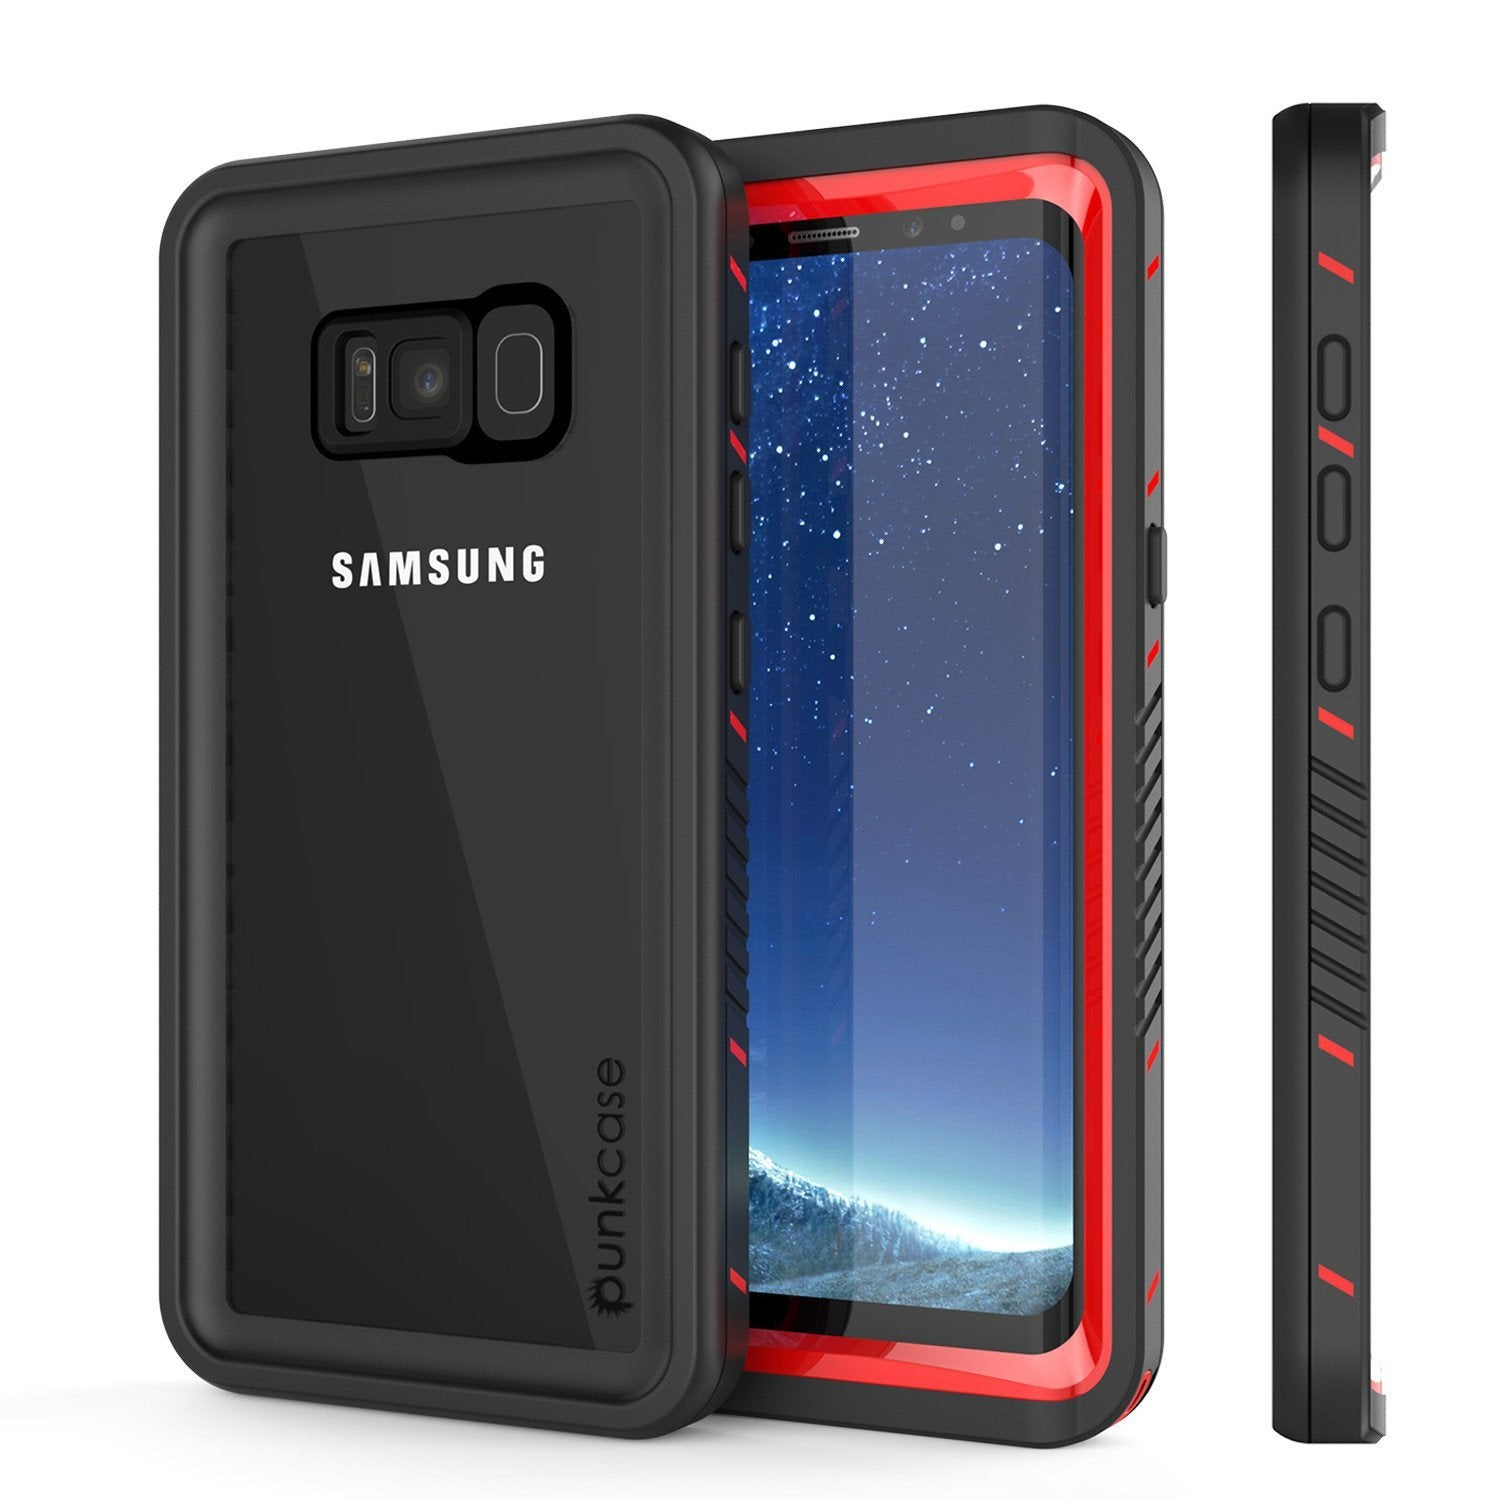 Galaxy S8 PLUS Case, Punkcase [Extreme Series] Armor Red Cover